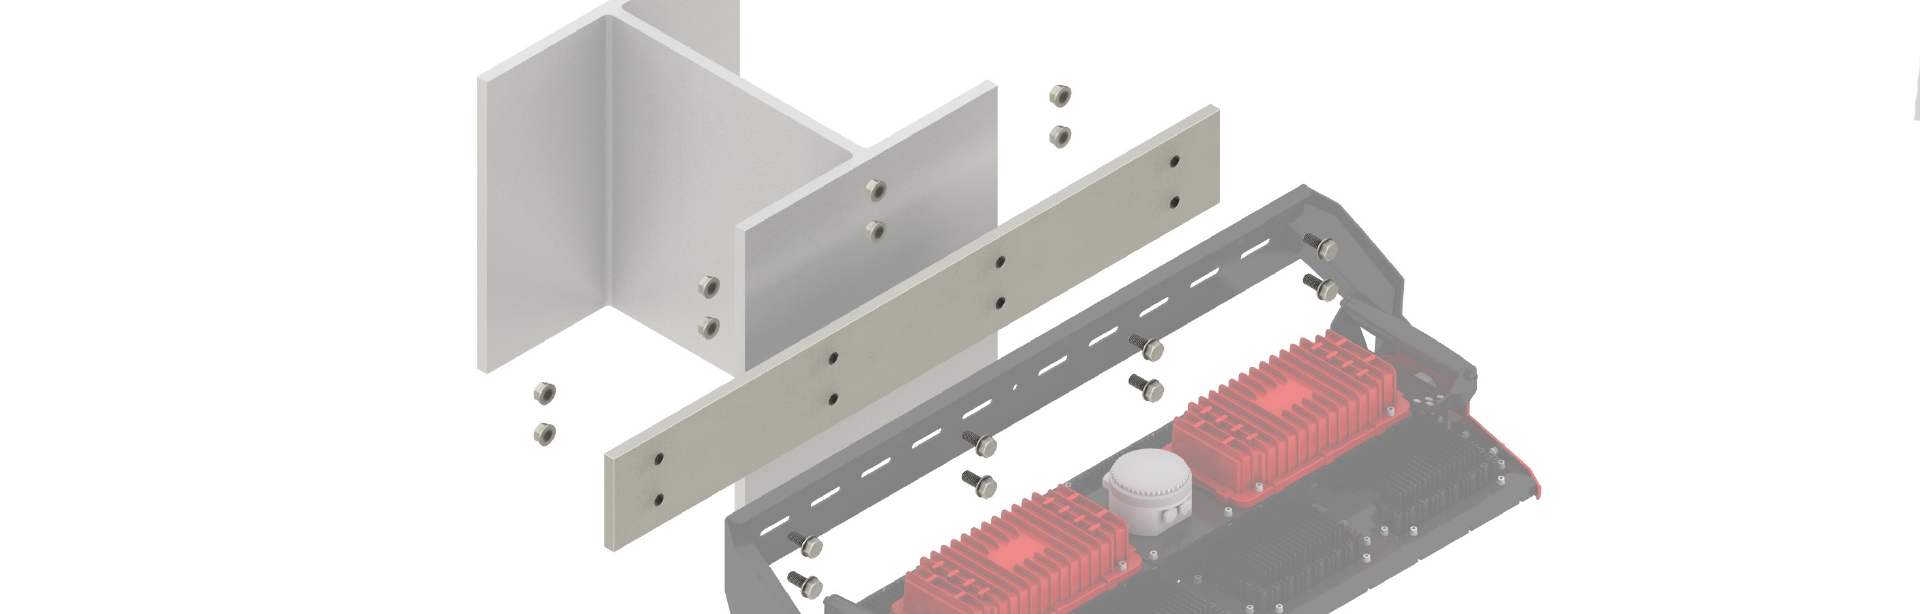 The Beam Coupling Plate is used to provide structural integrity along the length of the XBLADE™ 960 mounting bracket in applications where the entire bracket cannot be fastened to a surface.